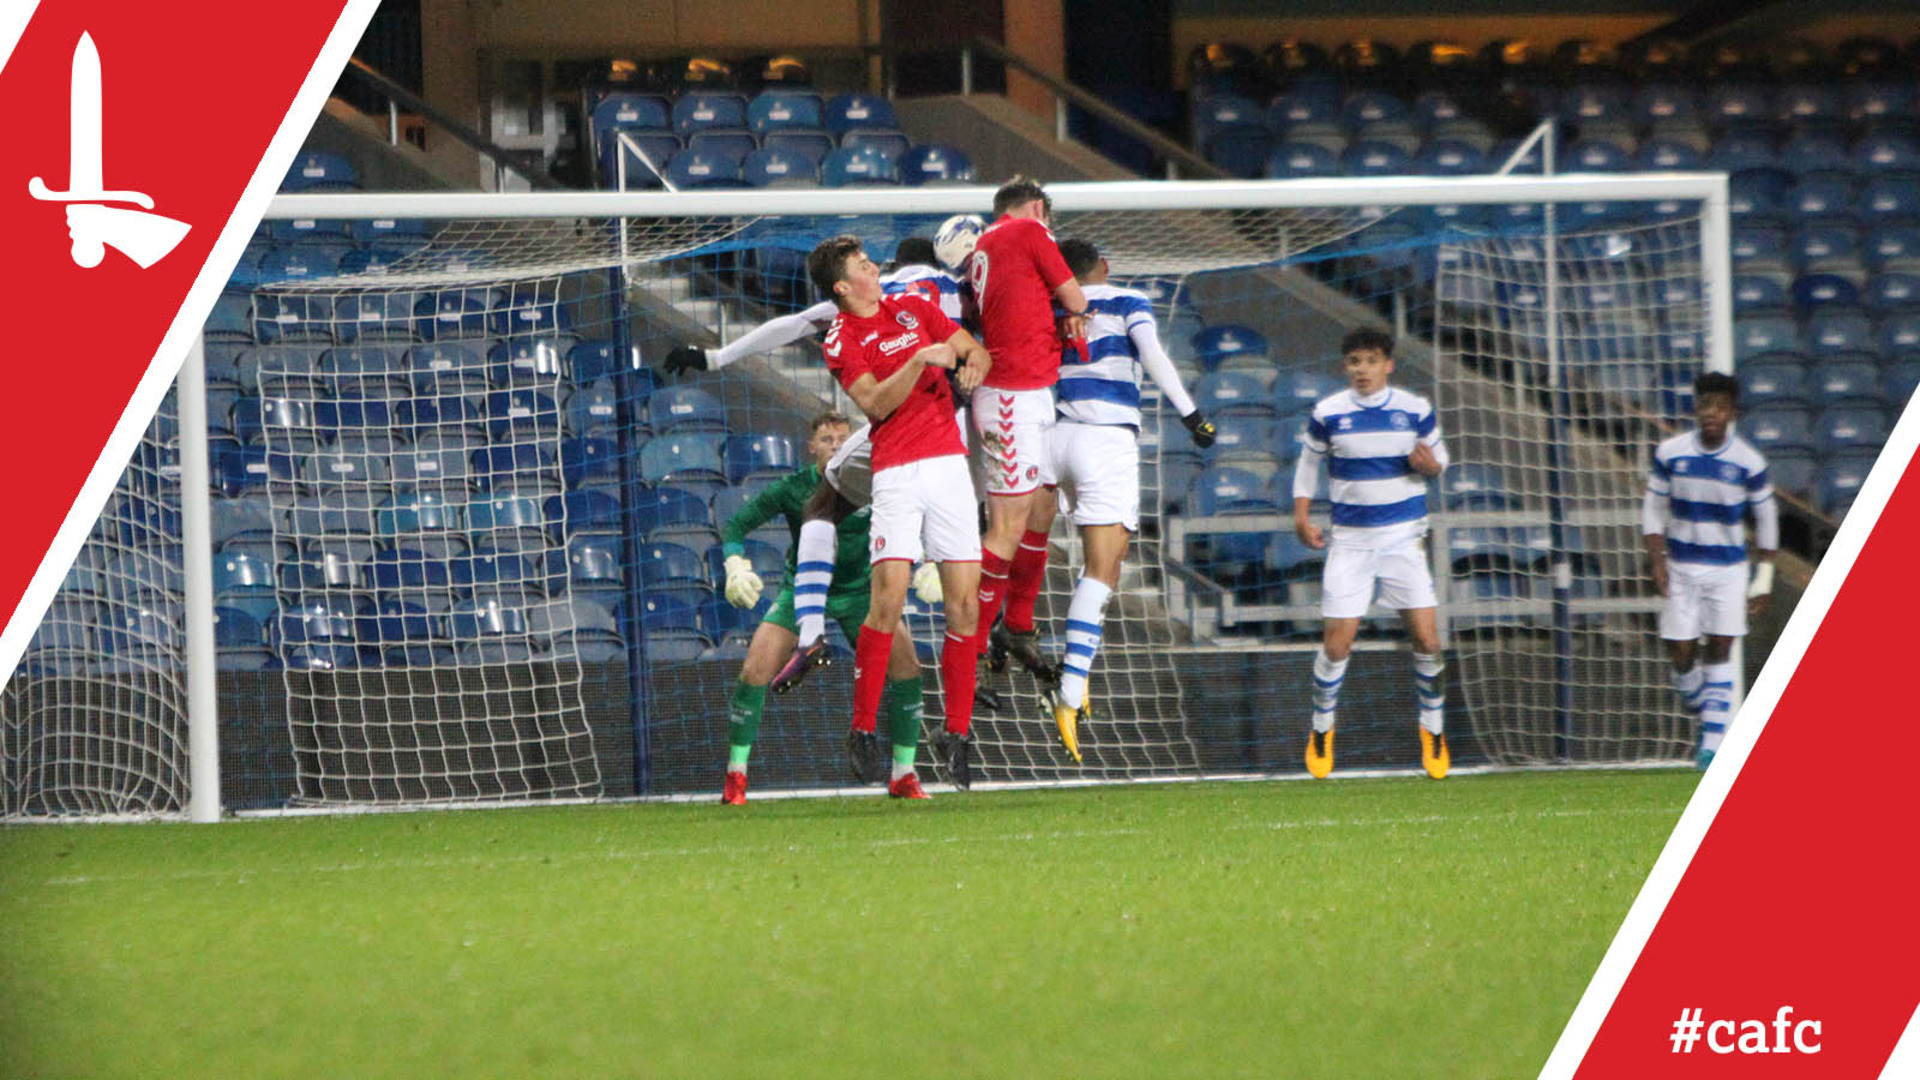 FA YOUTH CUP HIGHLIGHTS | QPR 1 Charlton 3